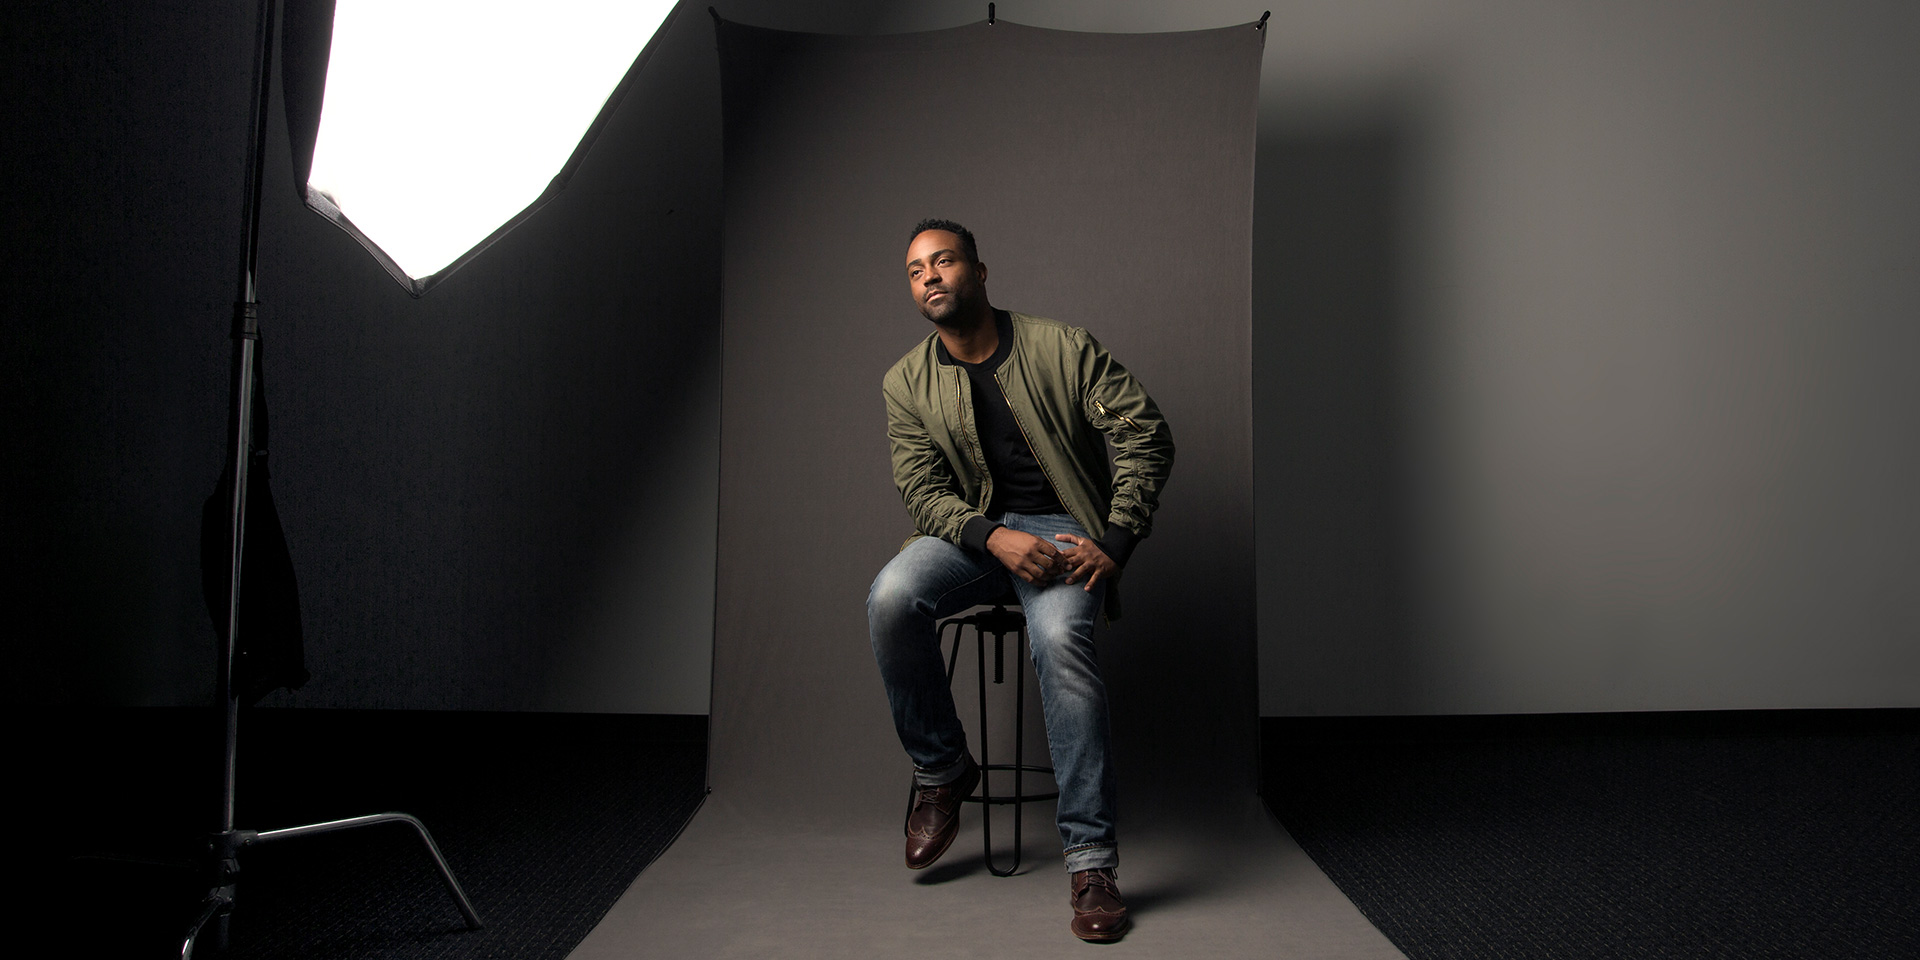 New portable backdrop sizes allow full-body portraits